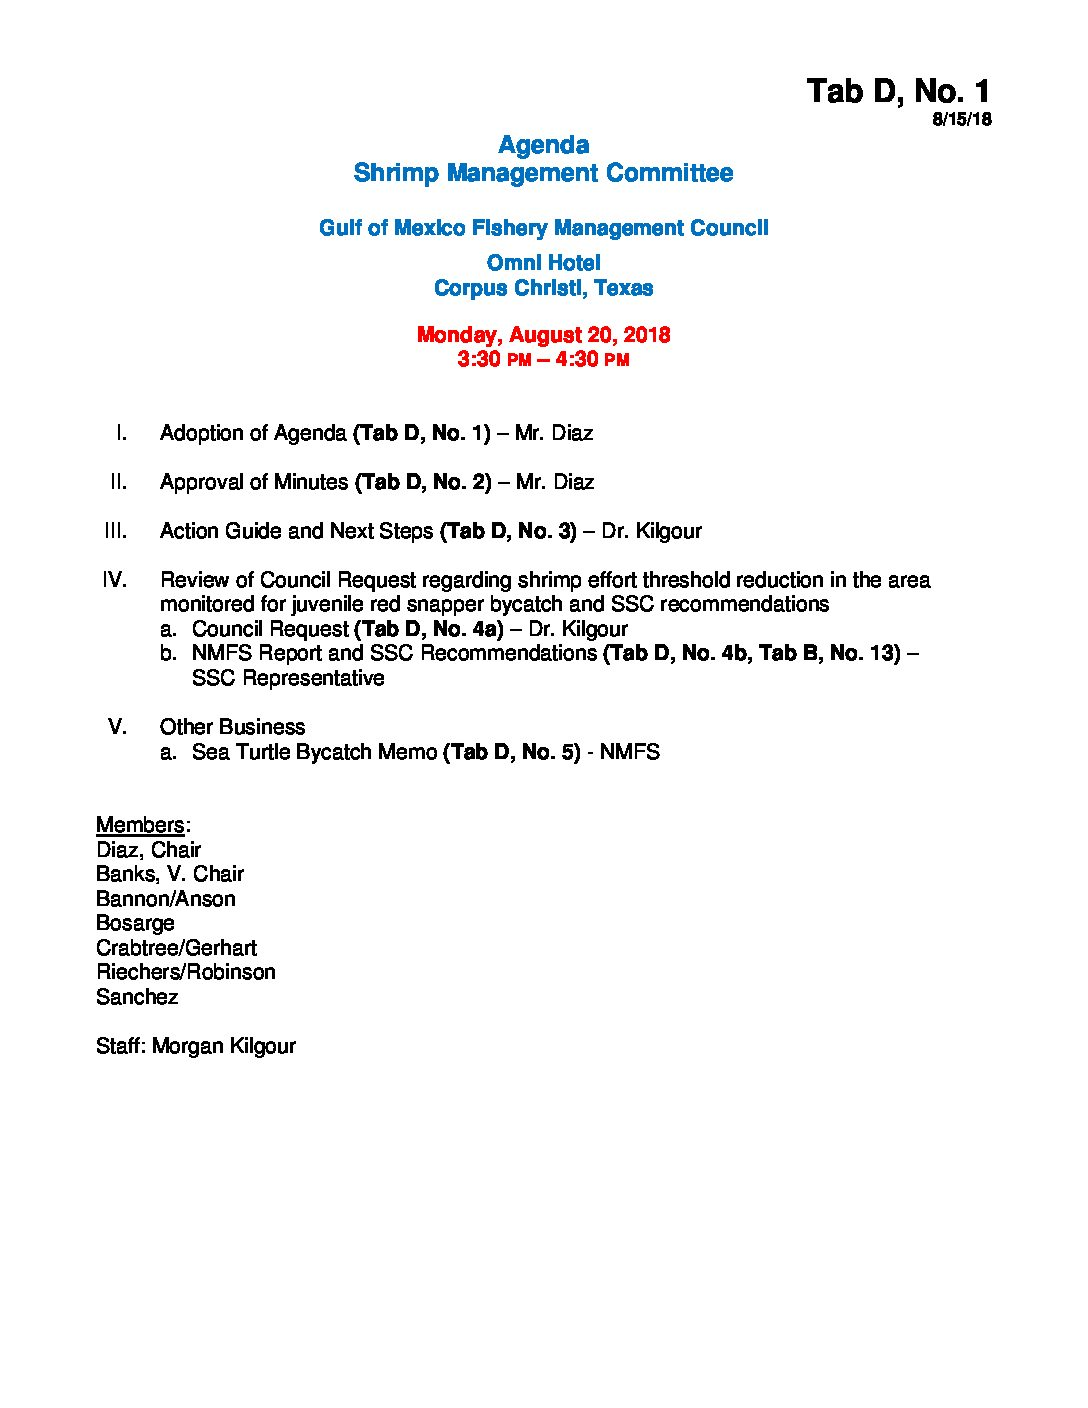 D – 1 Shrimp Committee Agenda August – Gulf of Mexico Fishery